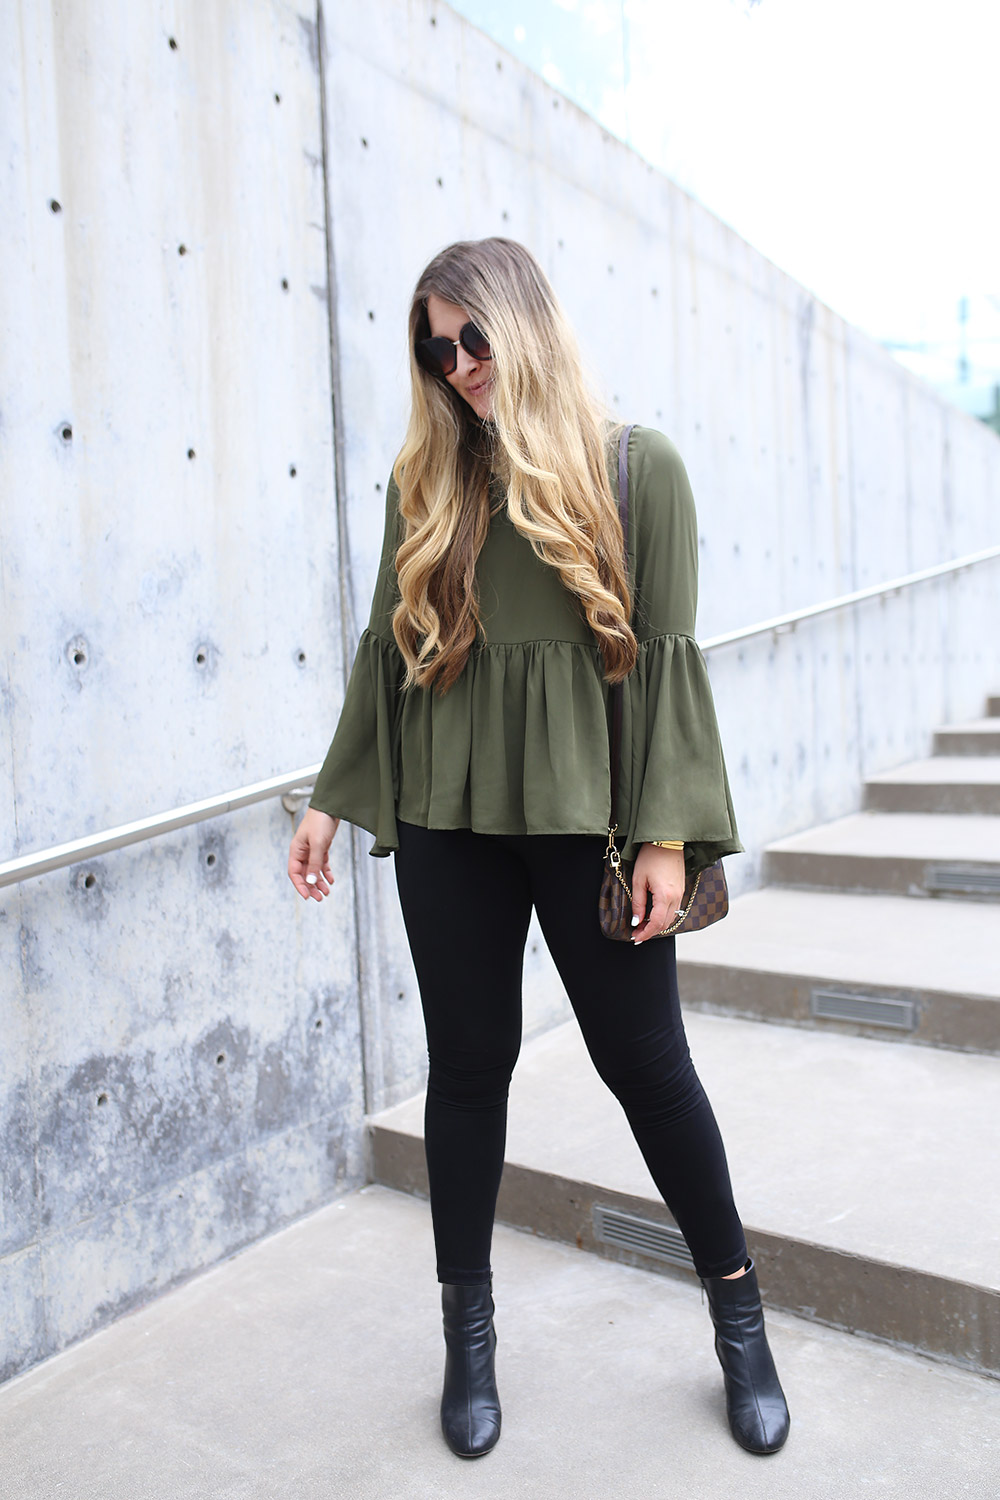 Versatile Olive Green Top for Fall from Asos for $72. Get ready for fall with this gorgeous bell sleeve top from Asos. It has a pretty, feminine silhouette with ruffles and dramatic sleeves. The olive green color is perfect for fall and can be dressed up or dressed down.  Pair it with lighter jeans and a pair of mules for running errands, strappy black heels and a sparkly bag for a spontaneous date night, and black cropped pants and pointy-toe pumps for the office. The options are endless with this top, and you will definitely get a ton of wear out of this top for $72.